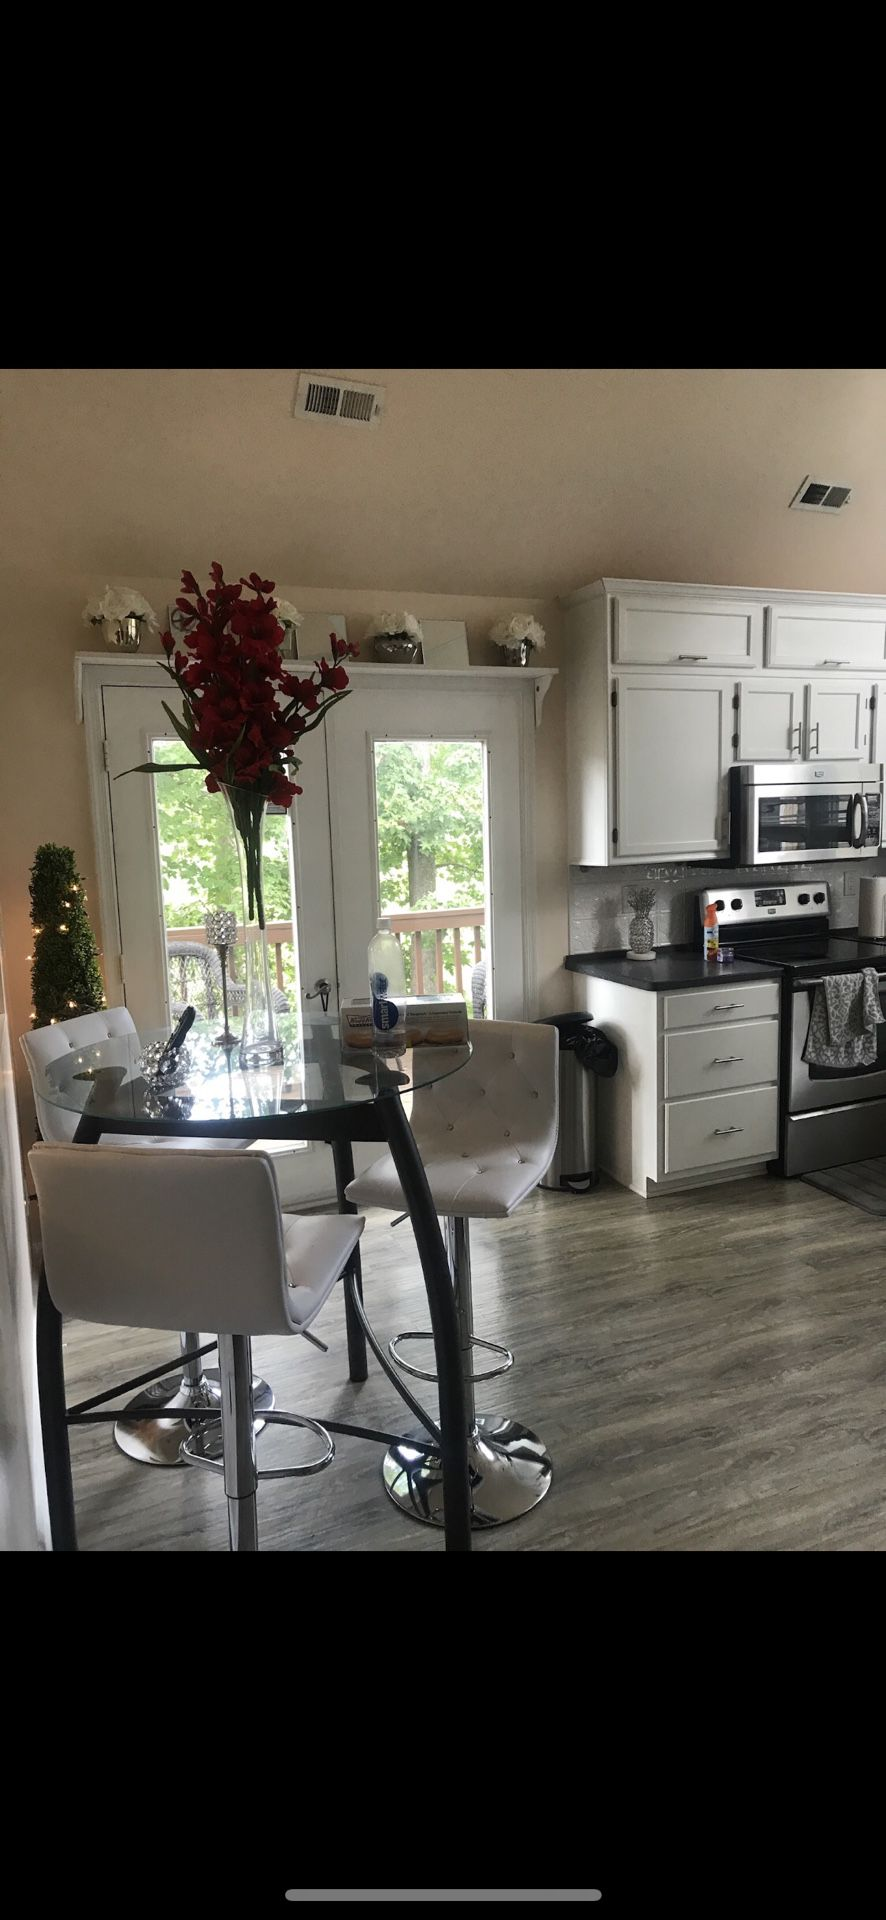 Kitchen table with chairs included